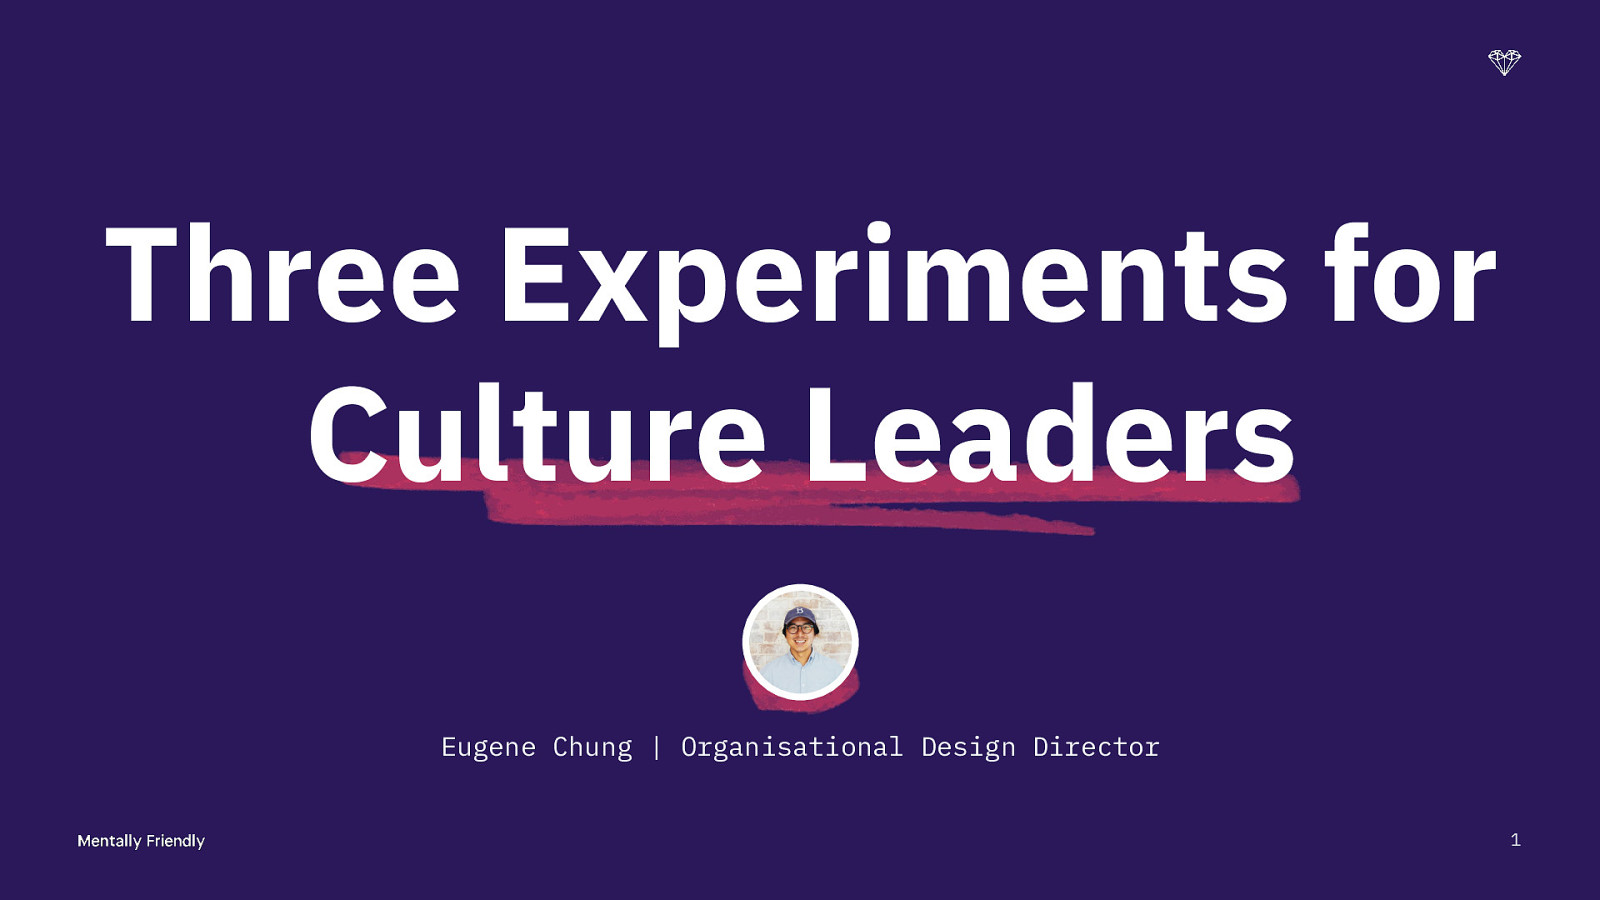 Three Experiments for Culture Leaders